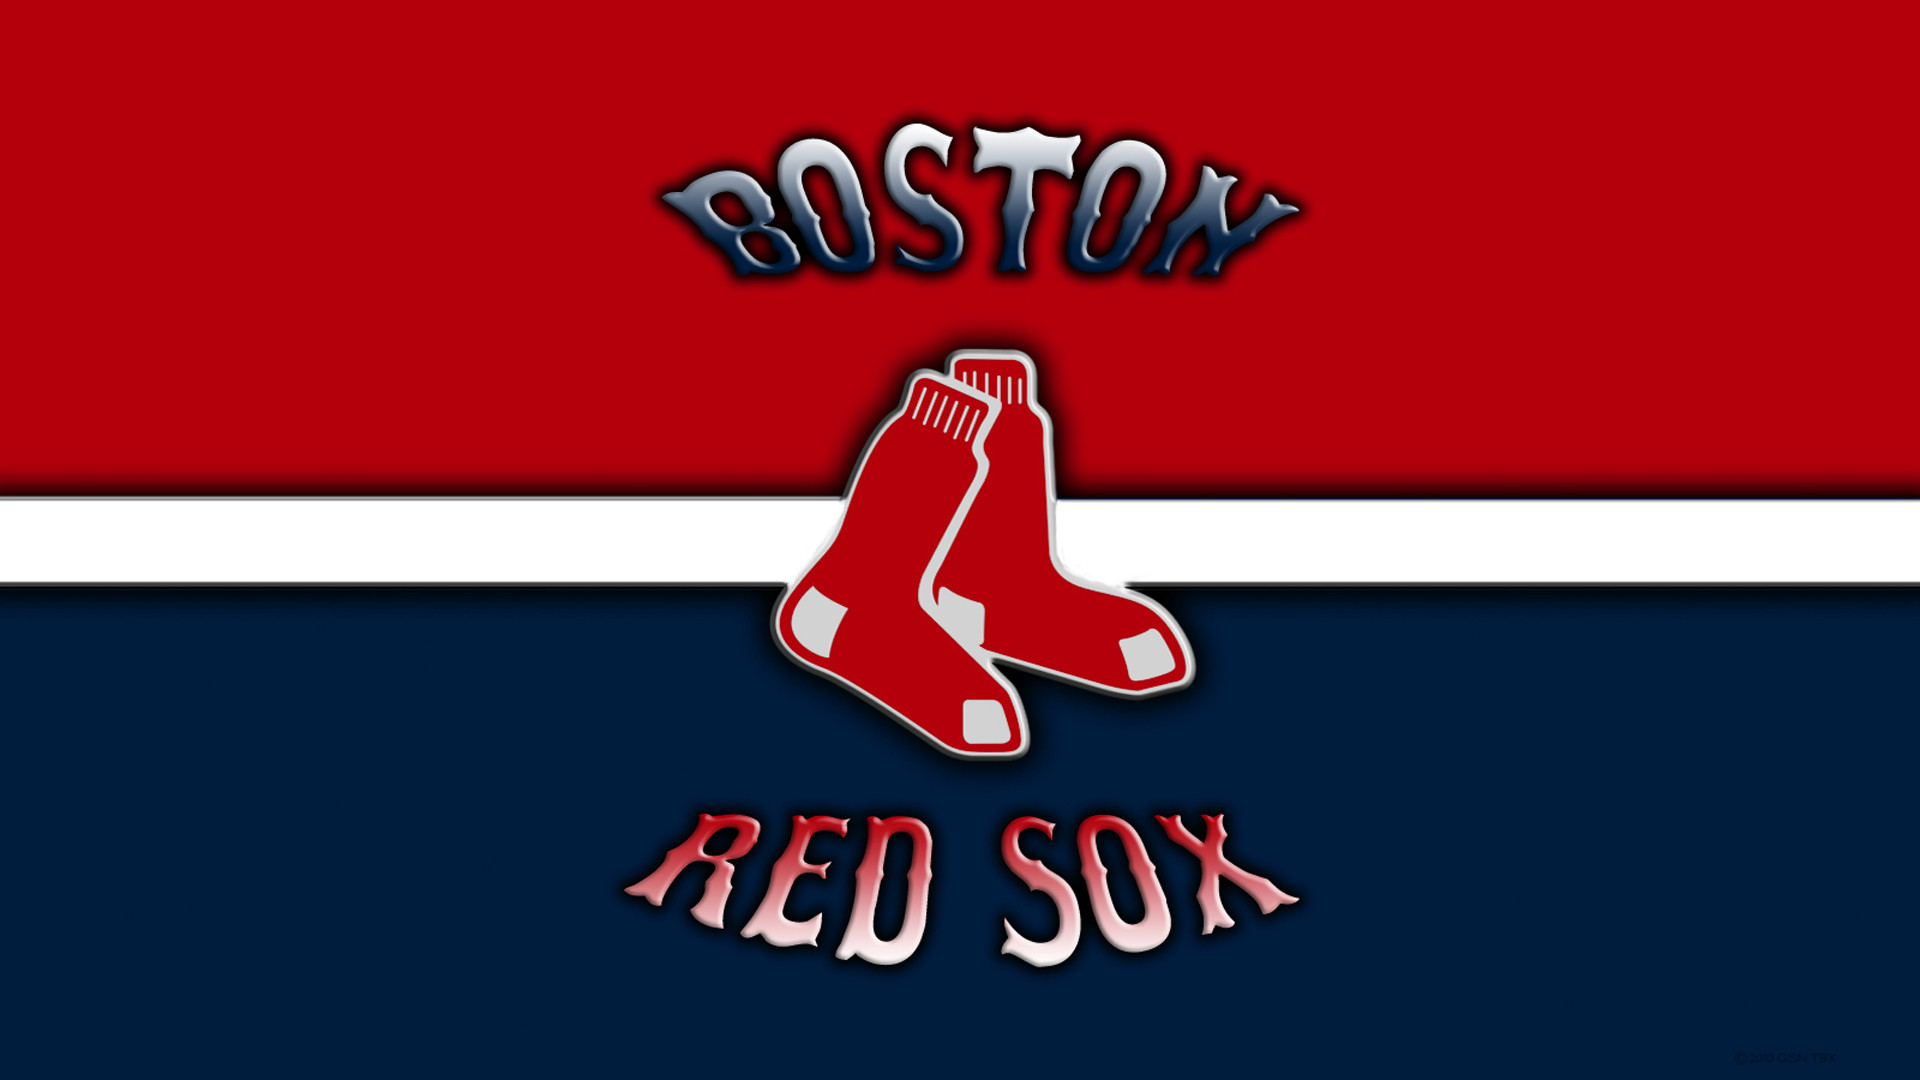 Red Sox Wallpaper free download.